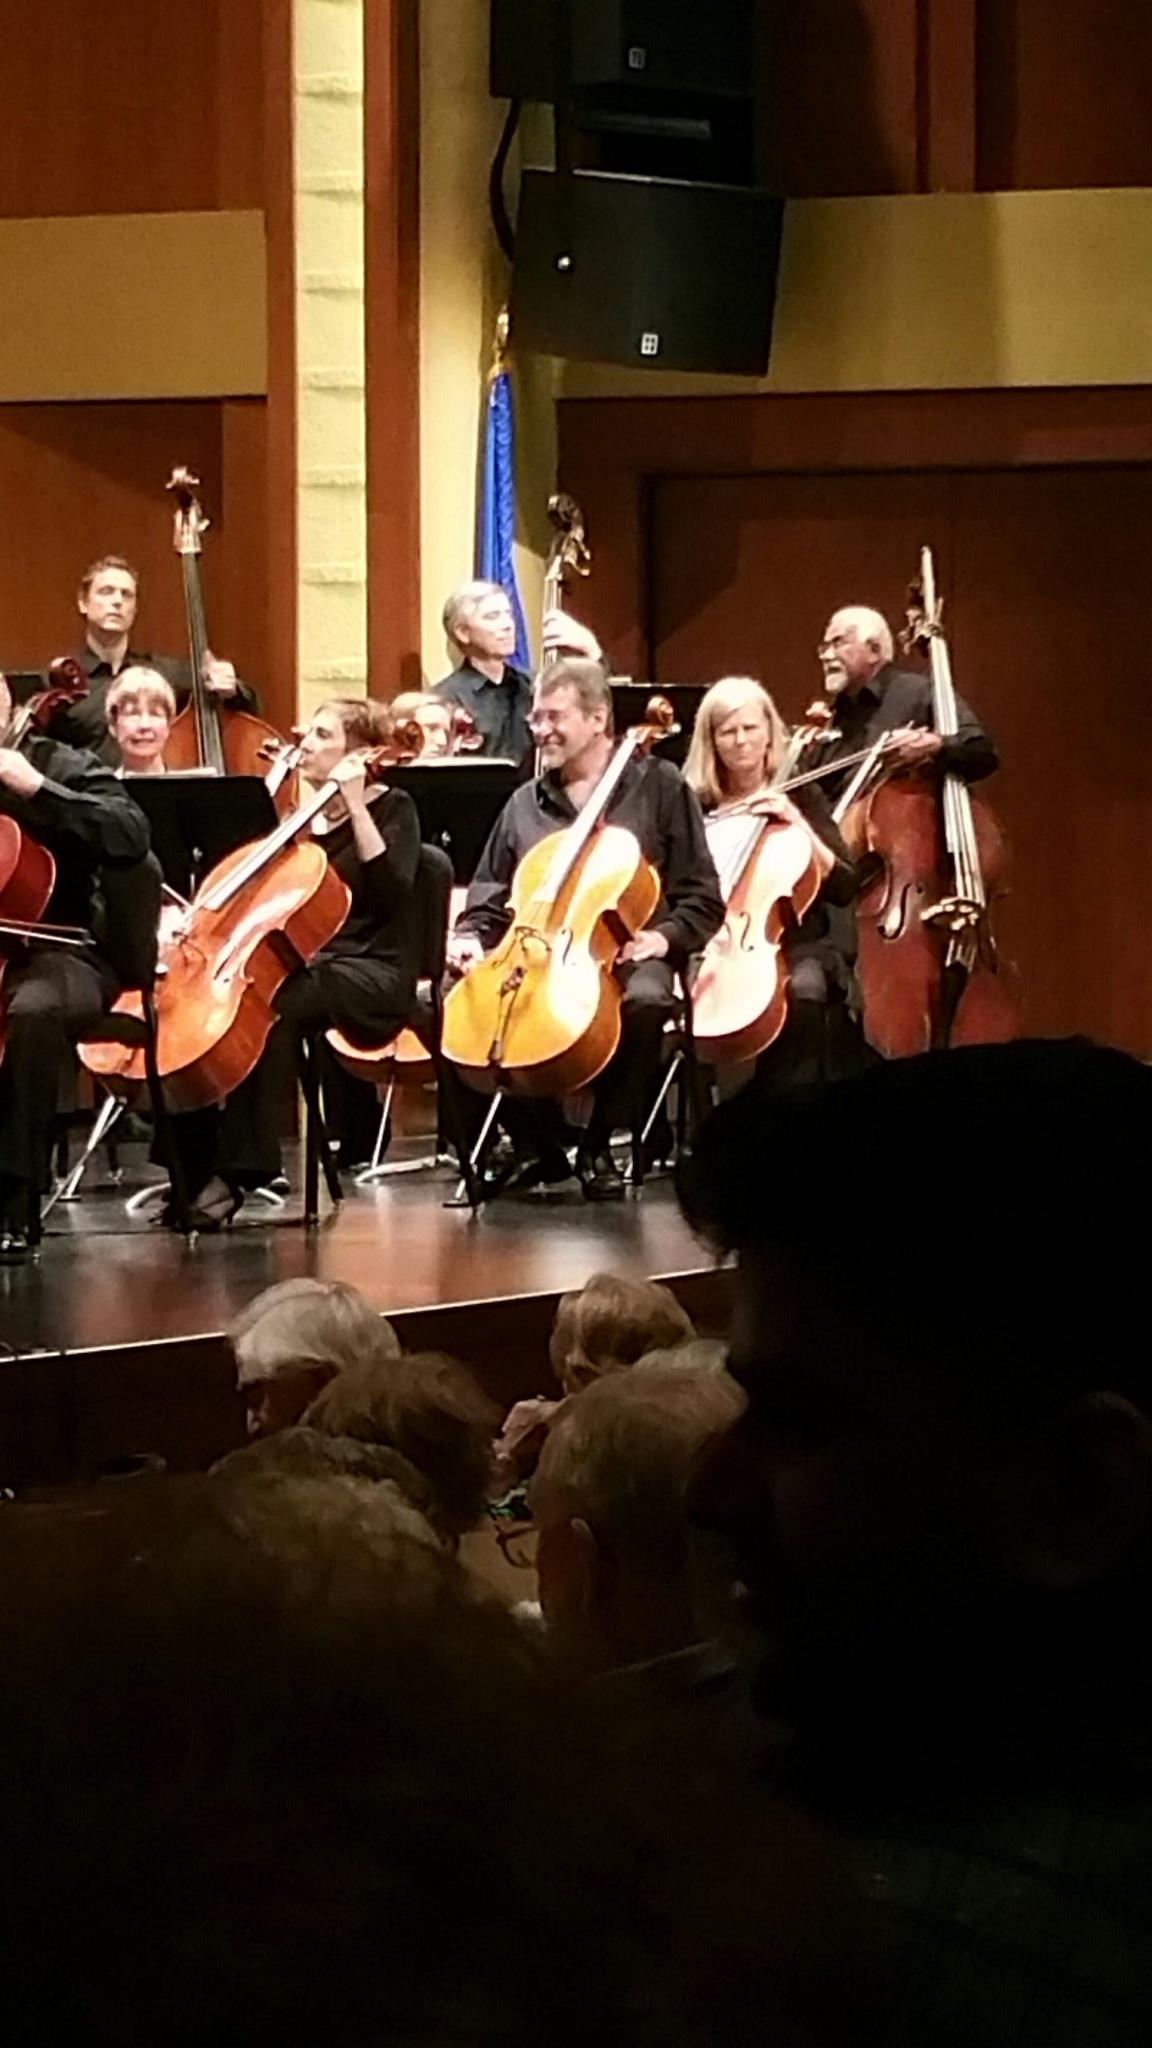 Hartford Symphony Orchestra Cello Section at Belding Theater at The Bushnell in Hartford CT